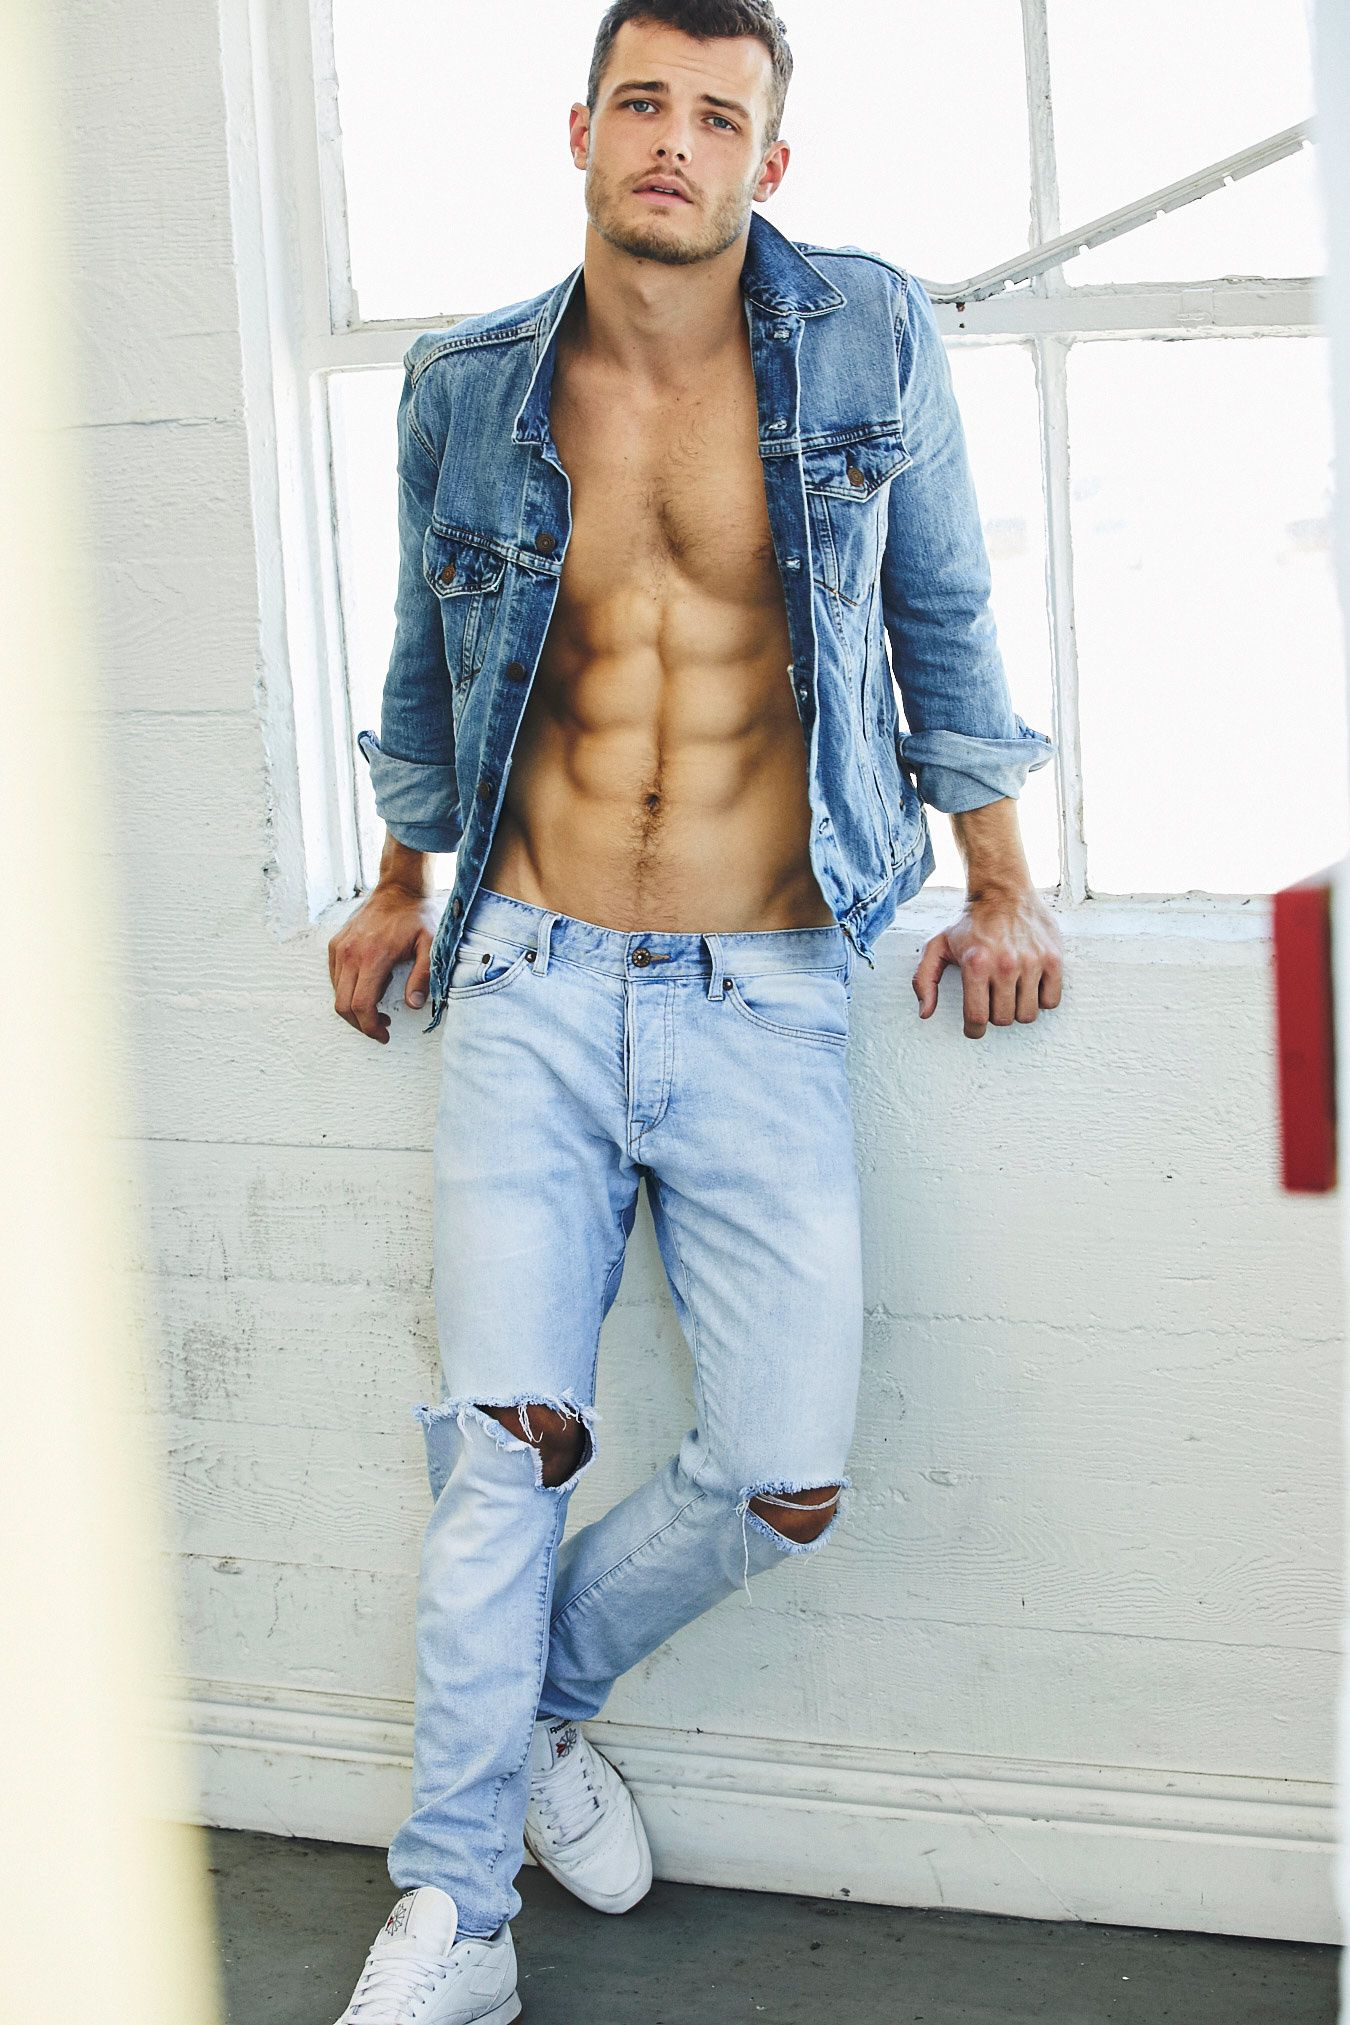 Y&R star Michael Mealor showing his washboard abs.